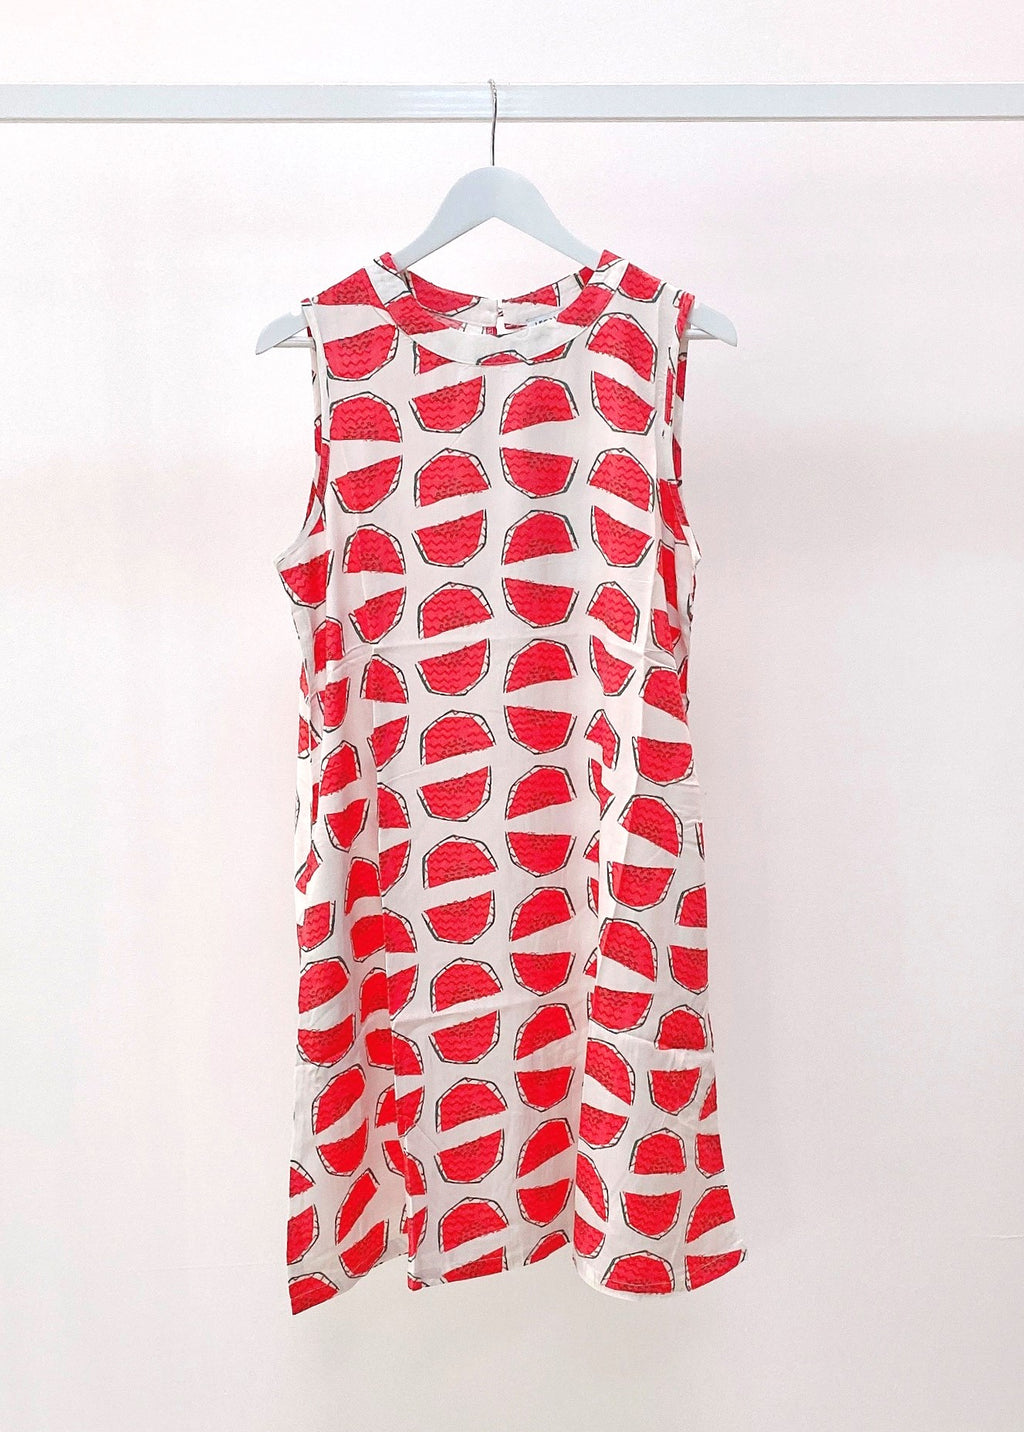 WATERMELON SLEEVE-LESS DRESS - WHITE - MARK DOWN MADNESS